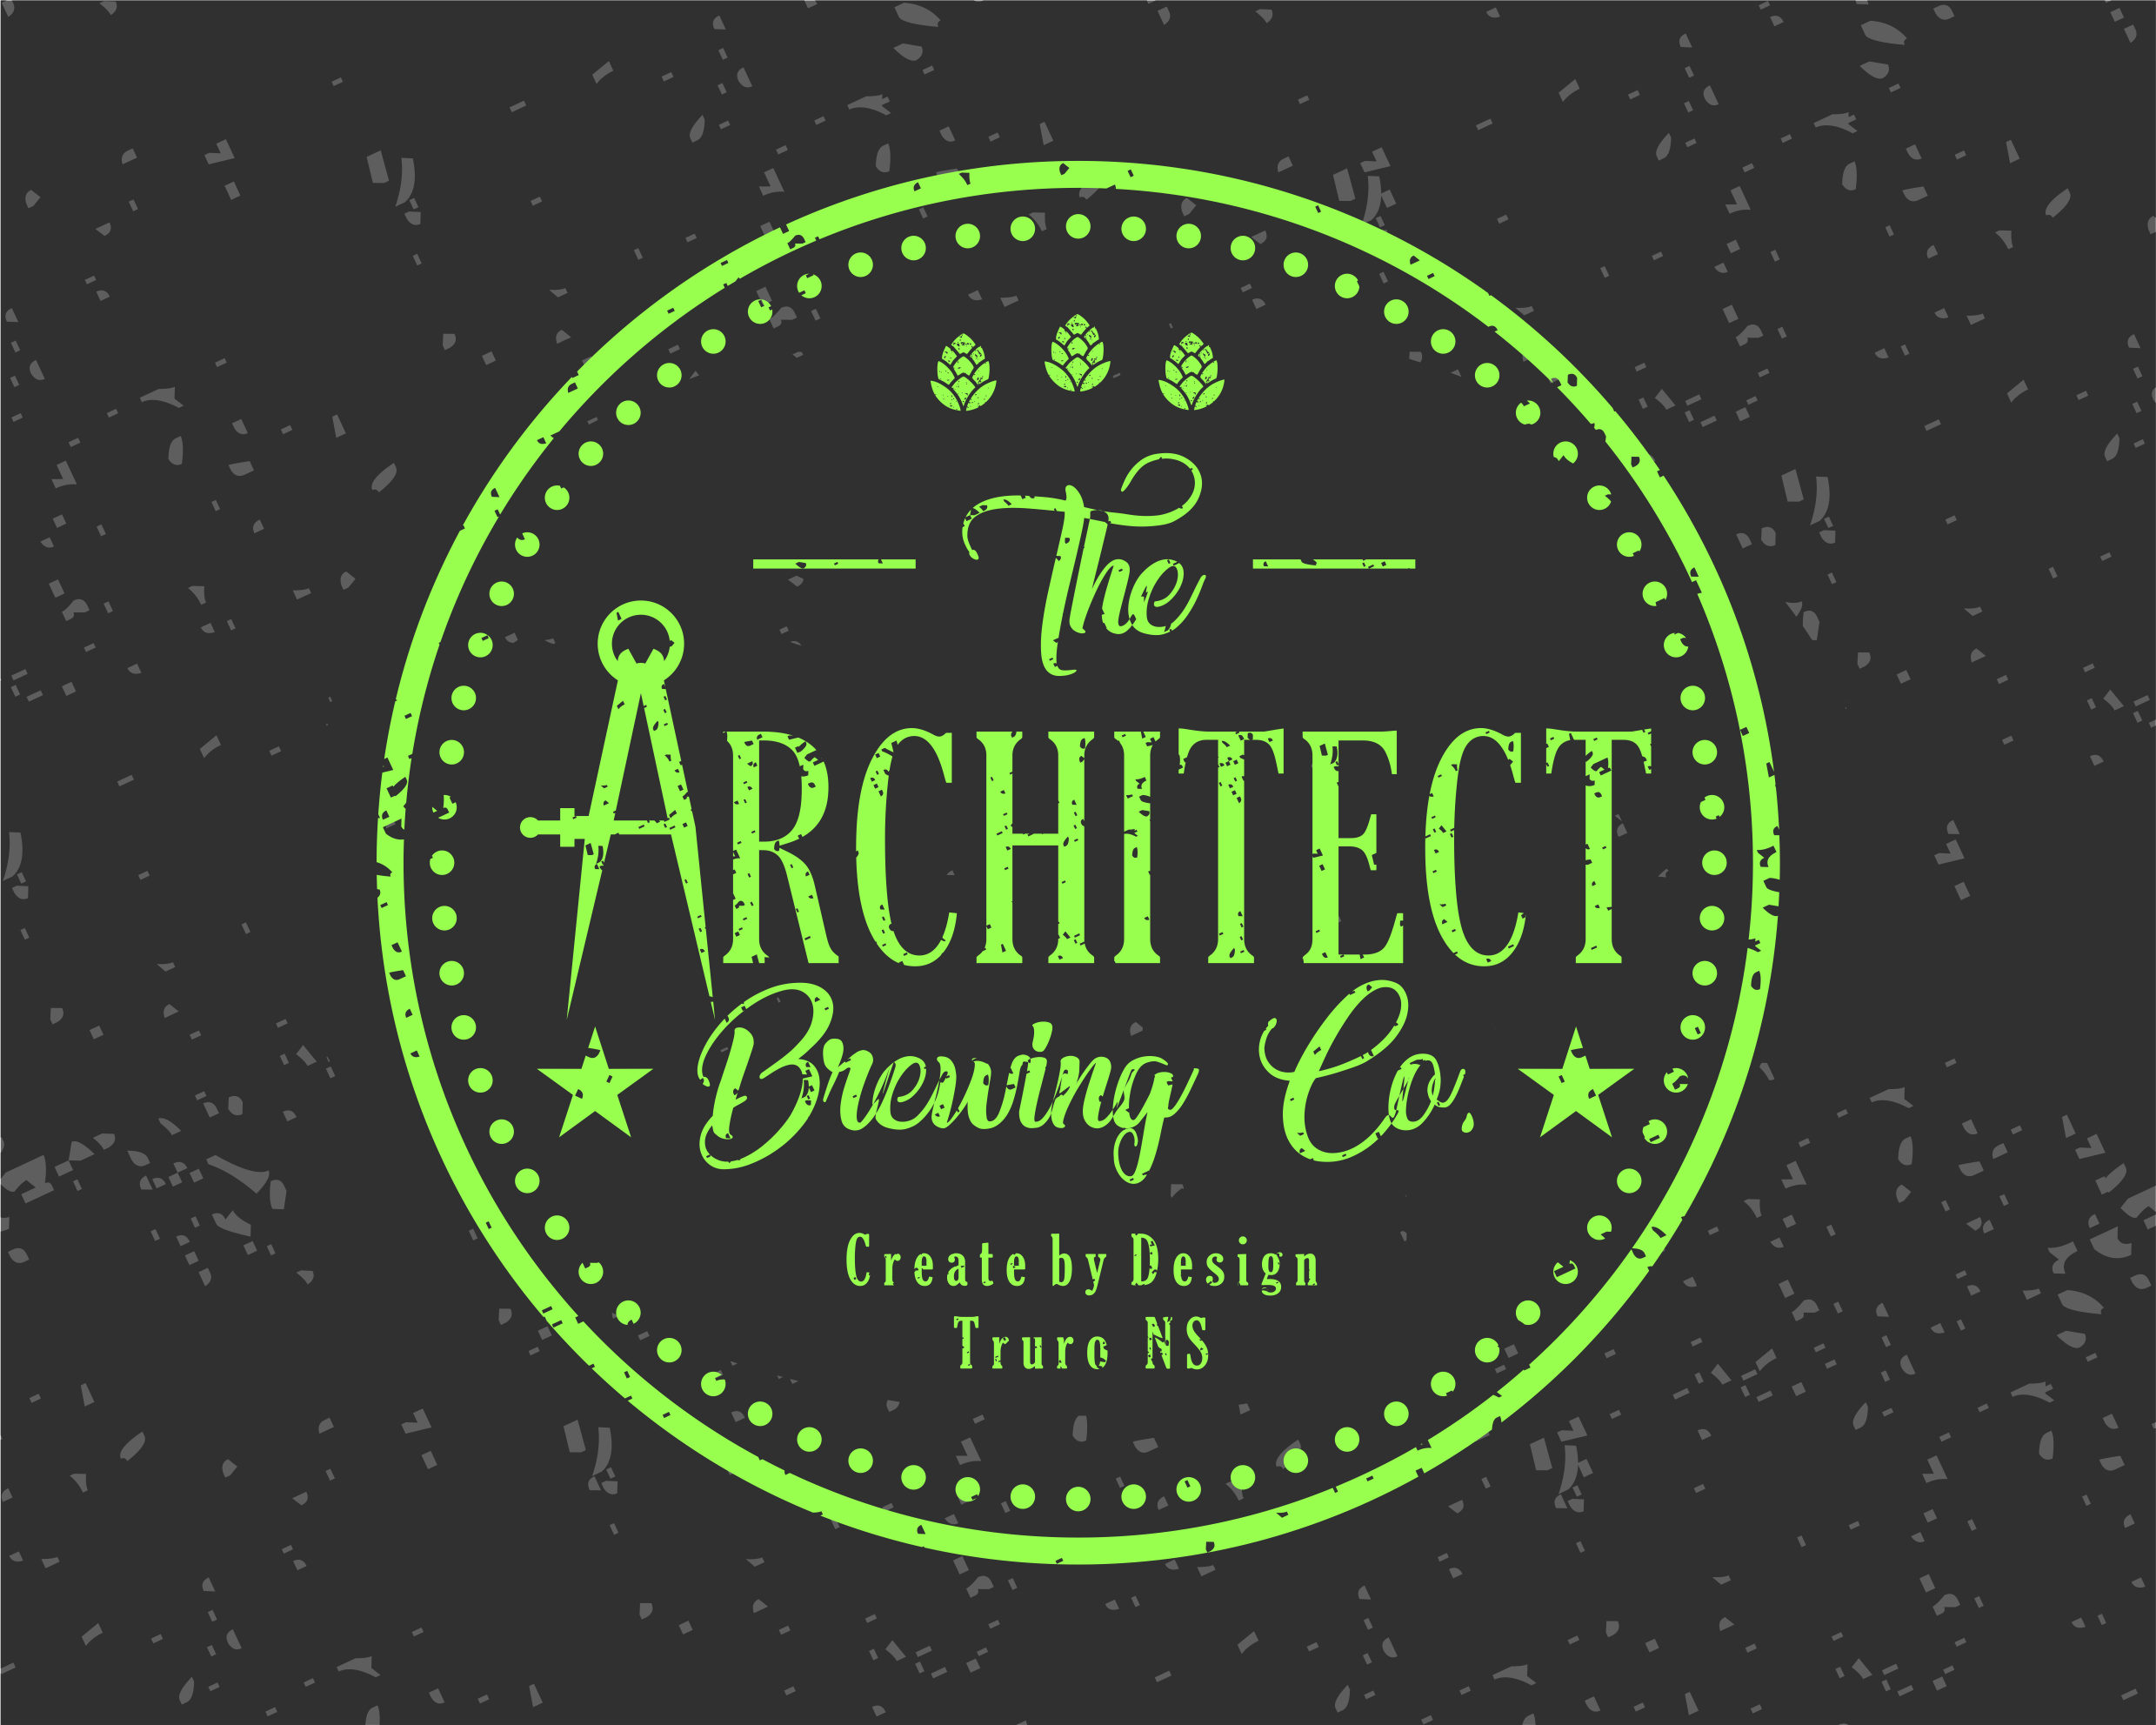 Logo Design by Net Bih - Entry No. 97 in the Logo Design Contest Captivating Logo Design for The Architect Brewing Co..